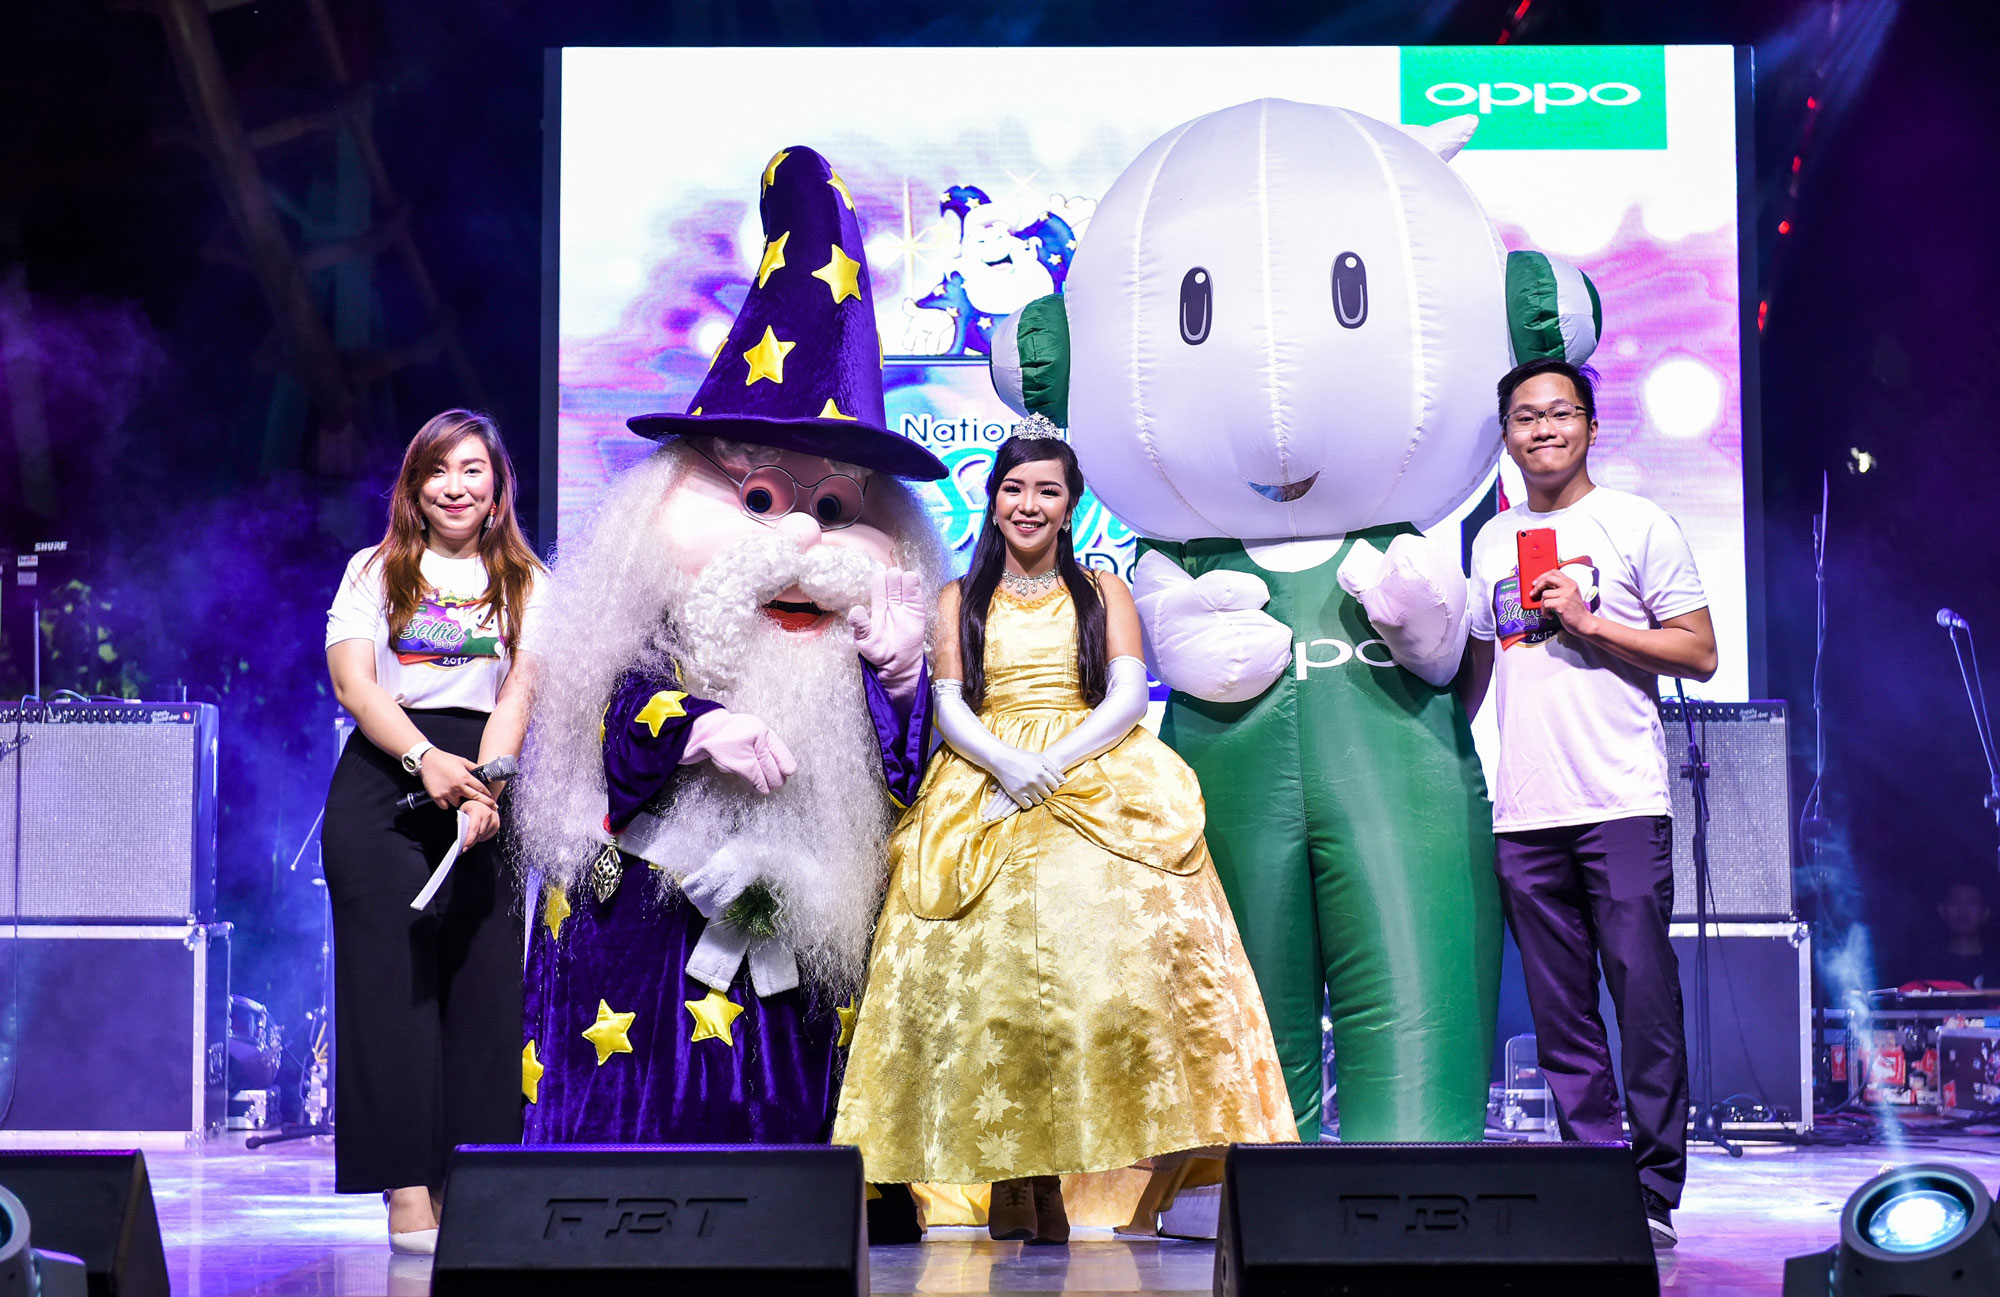 OPPO Celebrates National Selfie Day at Enchanted Kingdom